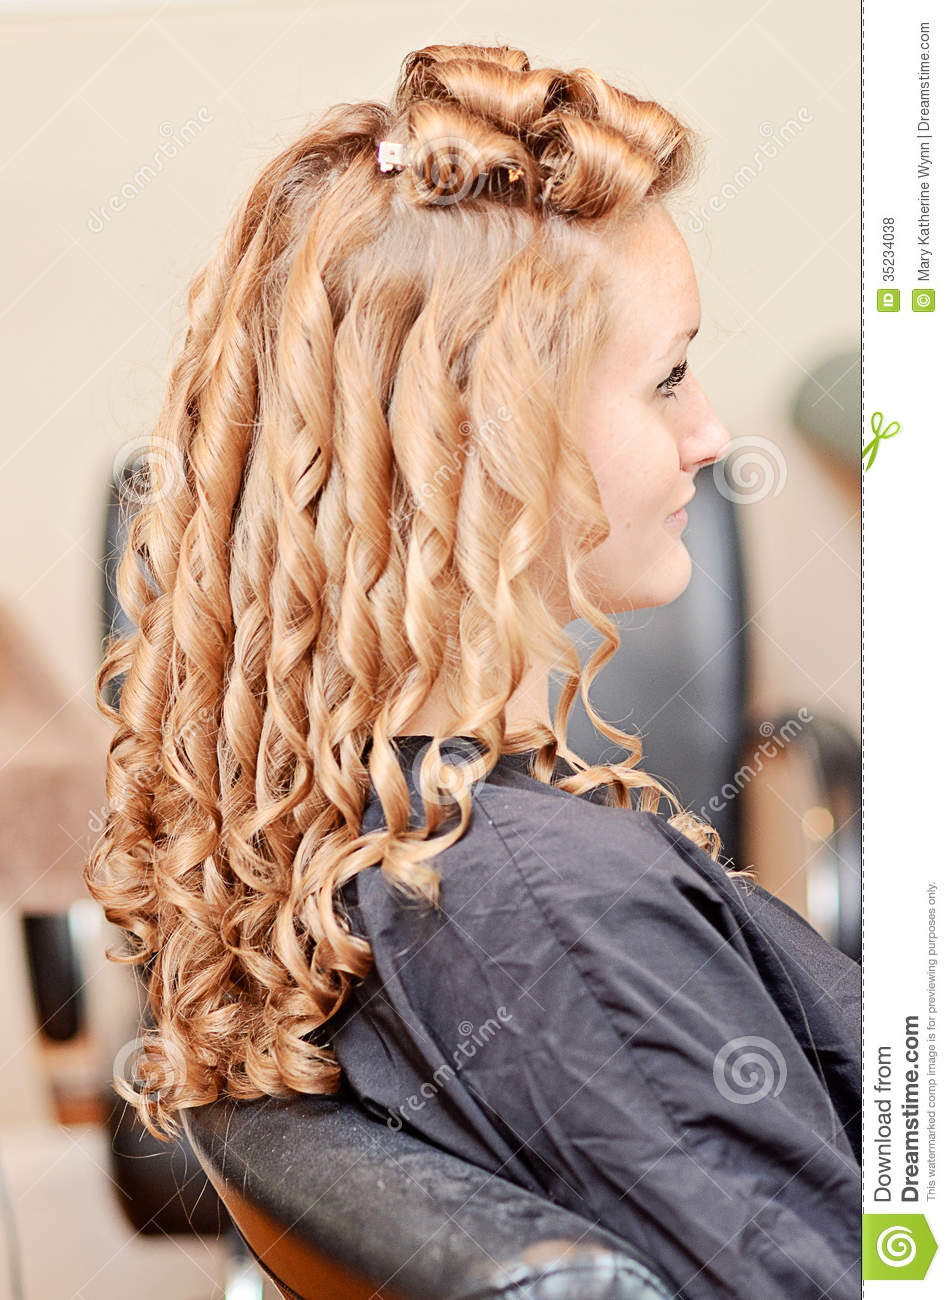 Curly Hair Styling Stock Photo Image Of Smooth Pins